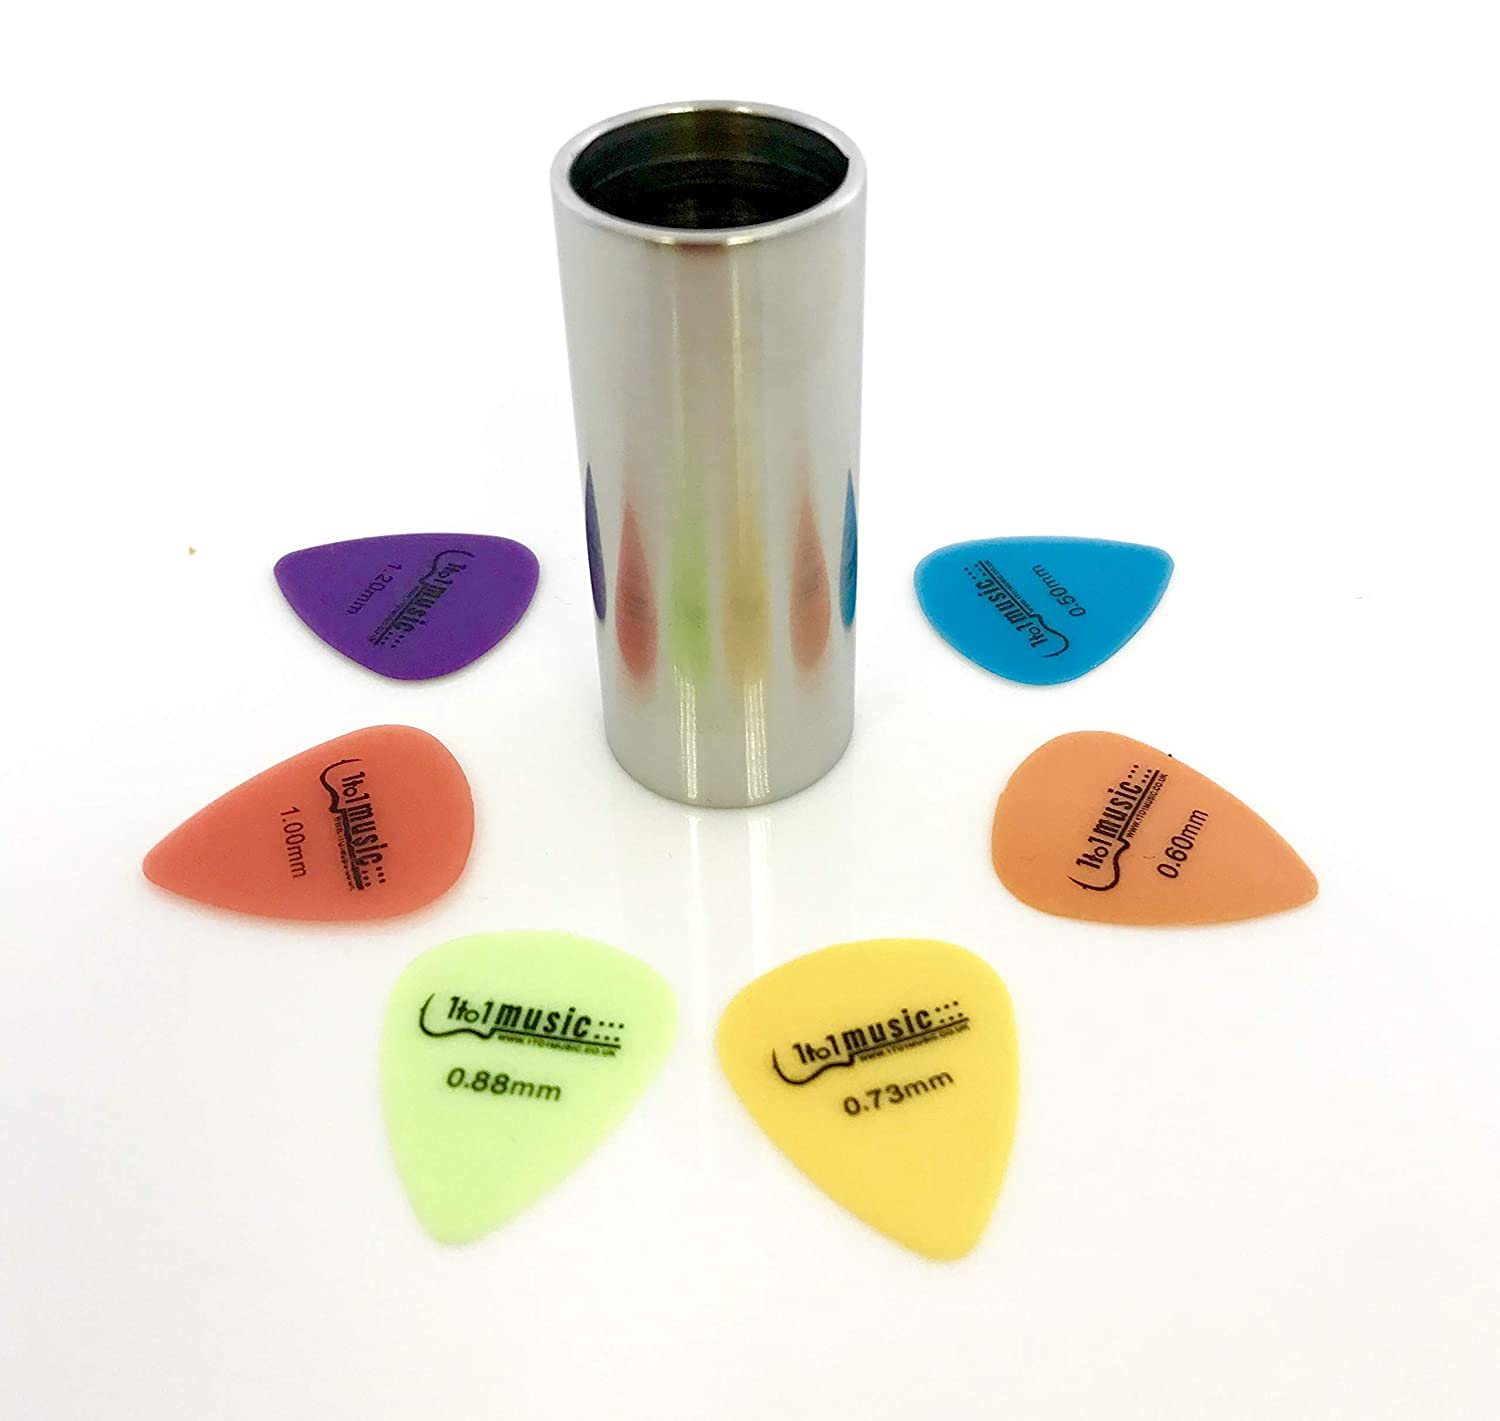 Groove Stainless Steel Cylinder Tube Guitar Slide Slider - 60mm + 6 FREE Plectrums 1to1Music